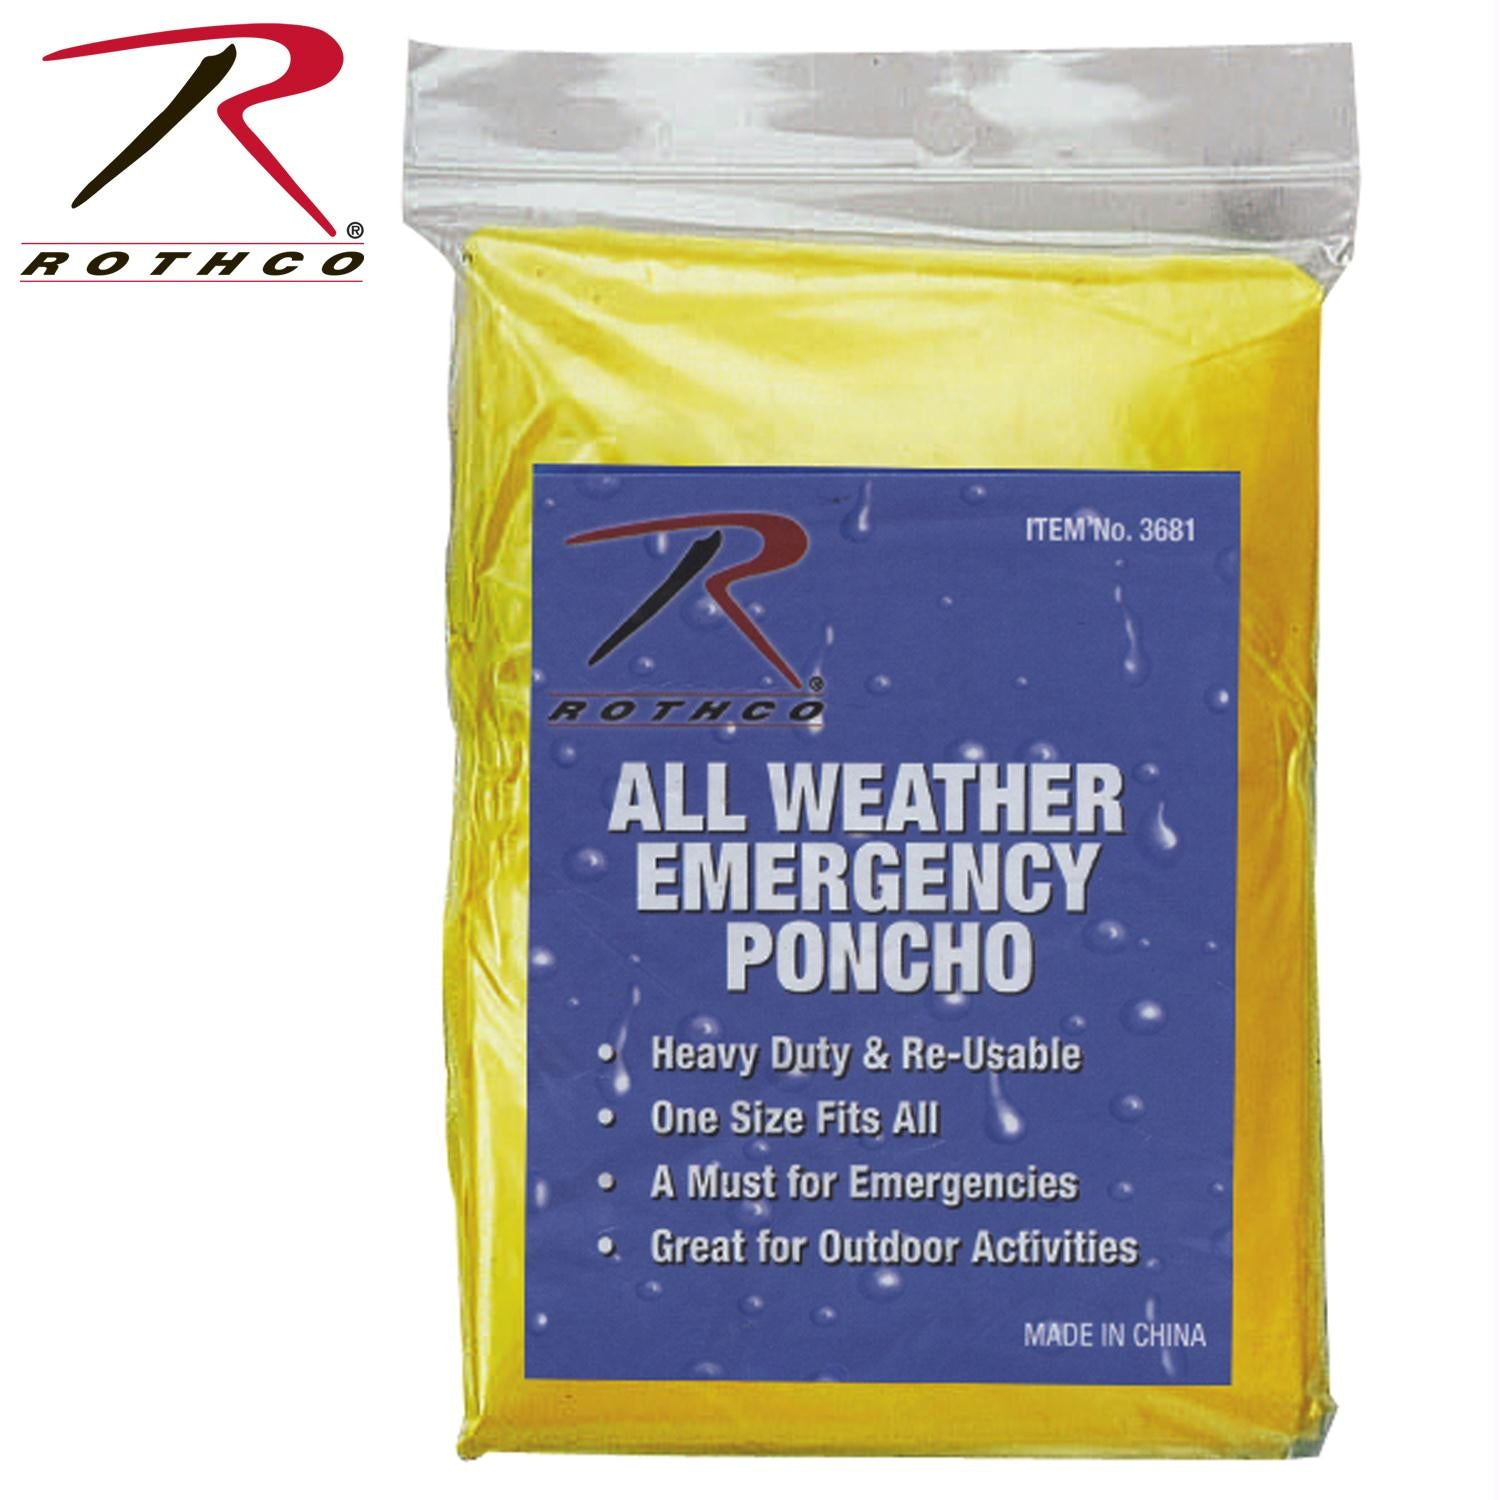 Rothco All Weather Emergency Poncho - Yellow